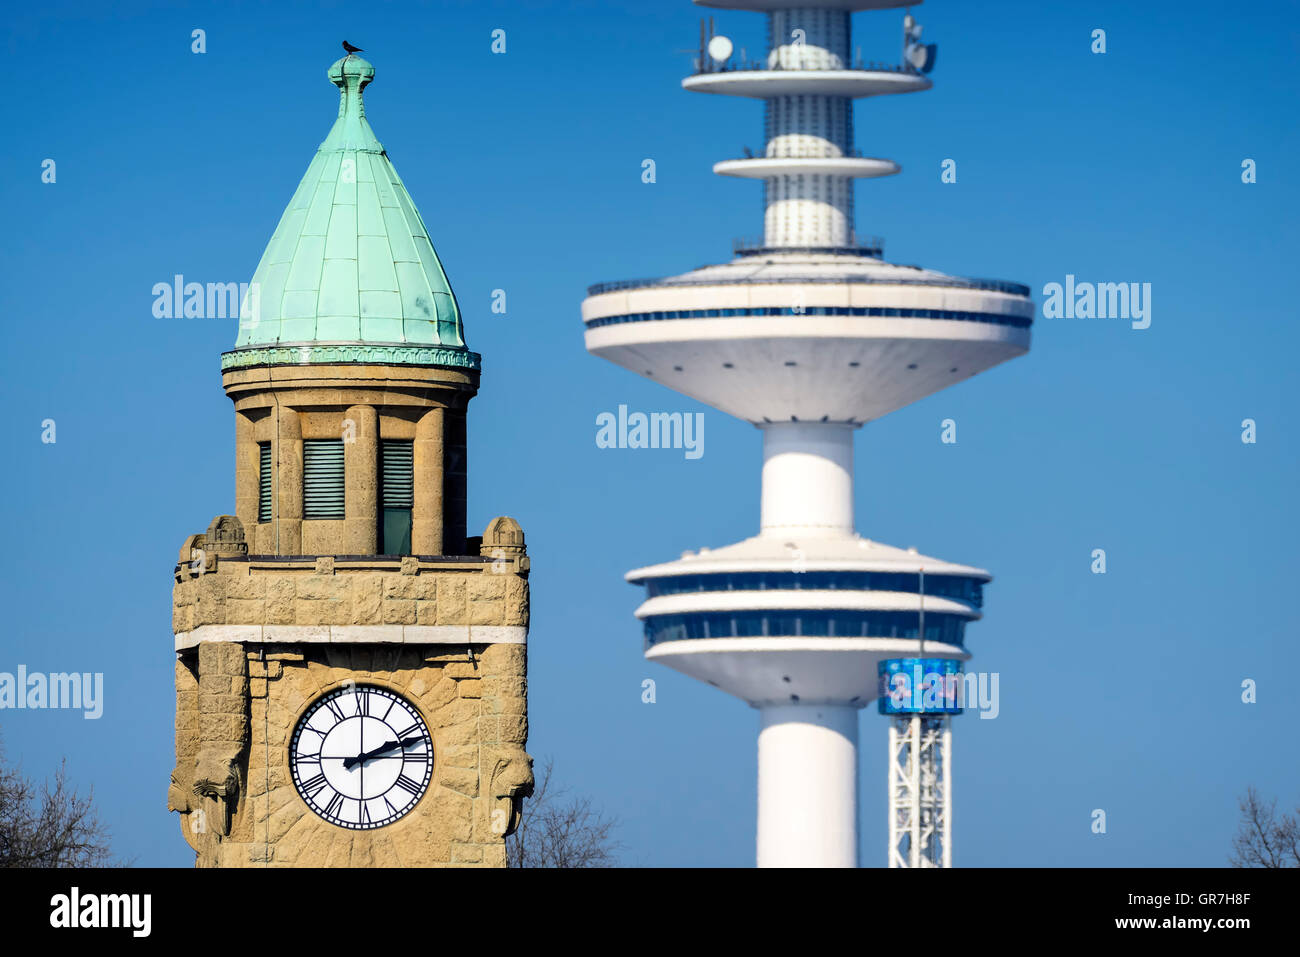 Tower Of The St. Pauli Landungsbruecken And Television Tower In Hamburg, Germany - Stock Image